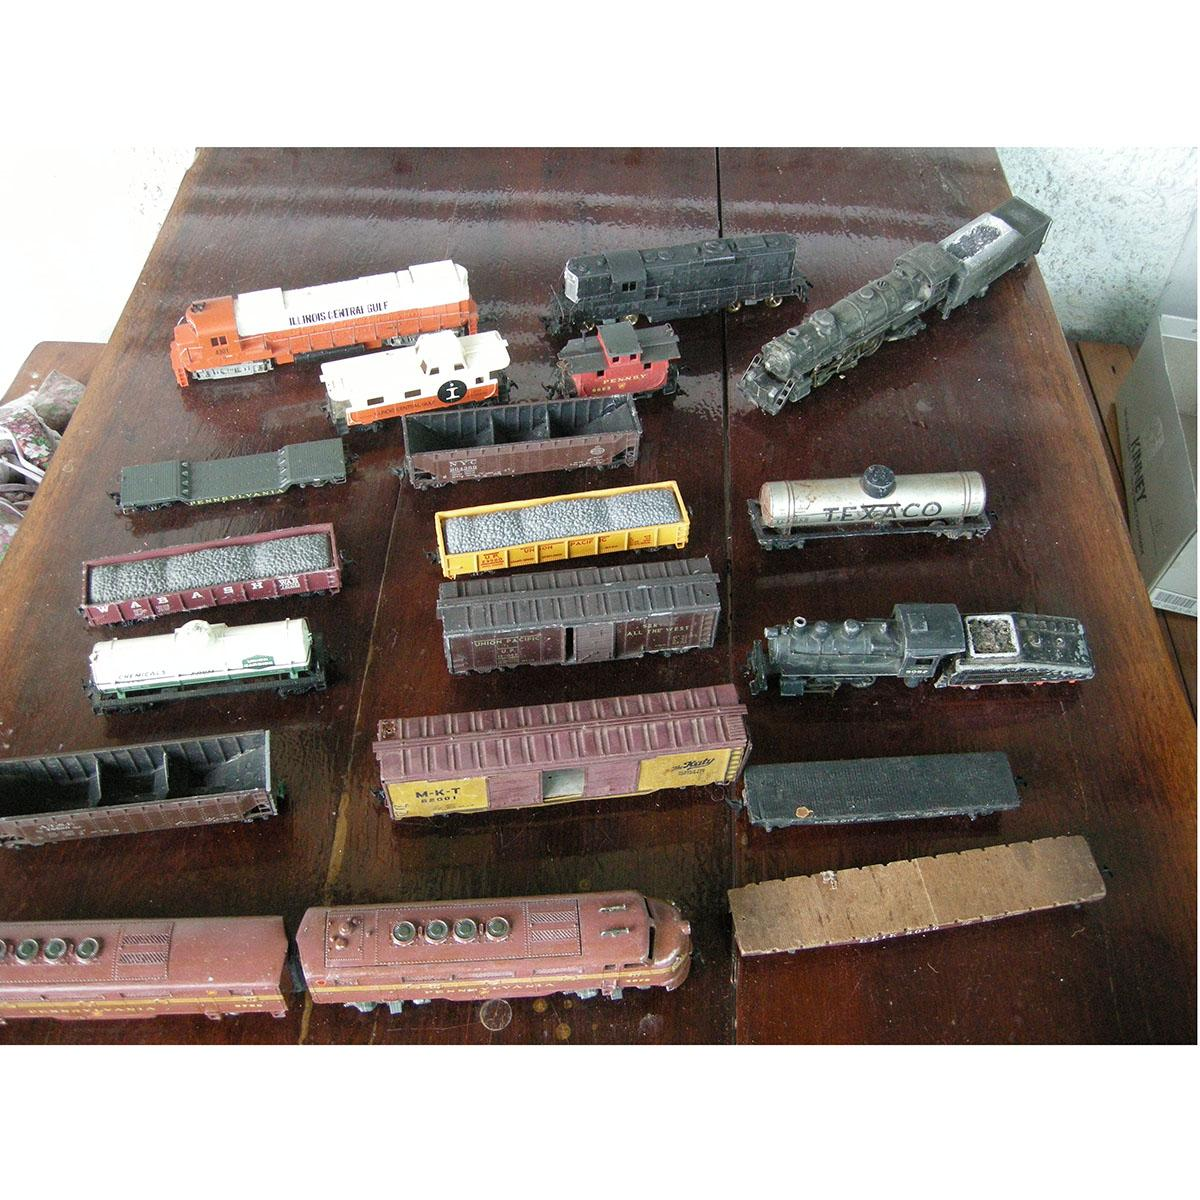 Attention Hobbyists & RR Lovers Complete Set Of HO Trains